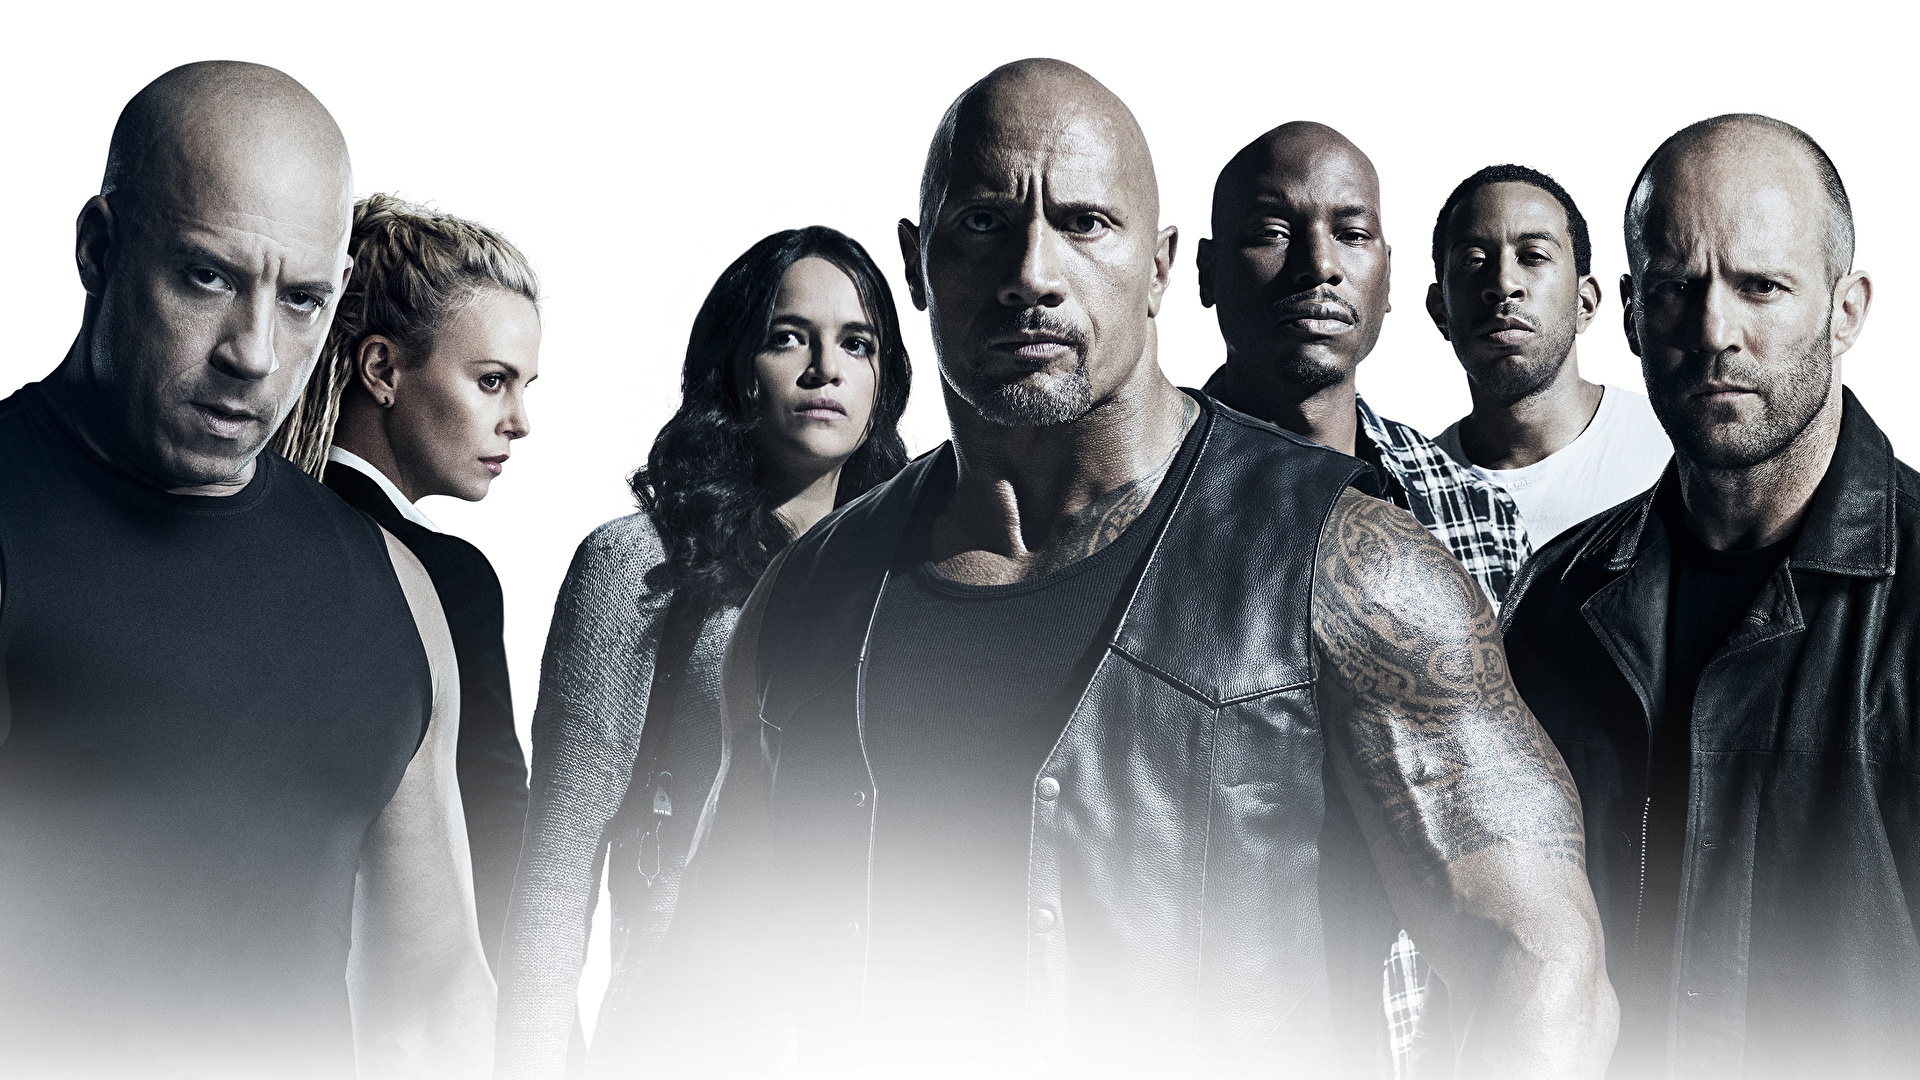 Photo The Fate Of The Furious Vin Diesel Jason Statham 1920x1080